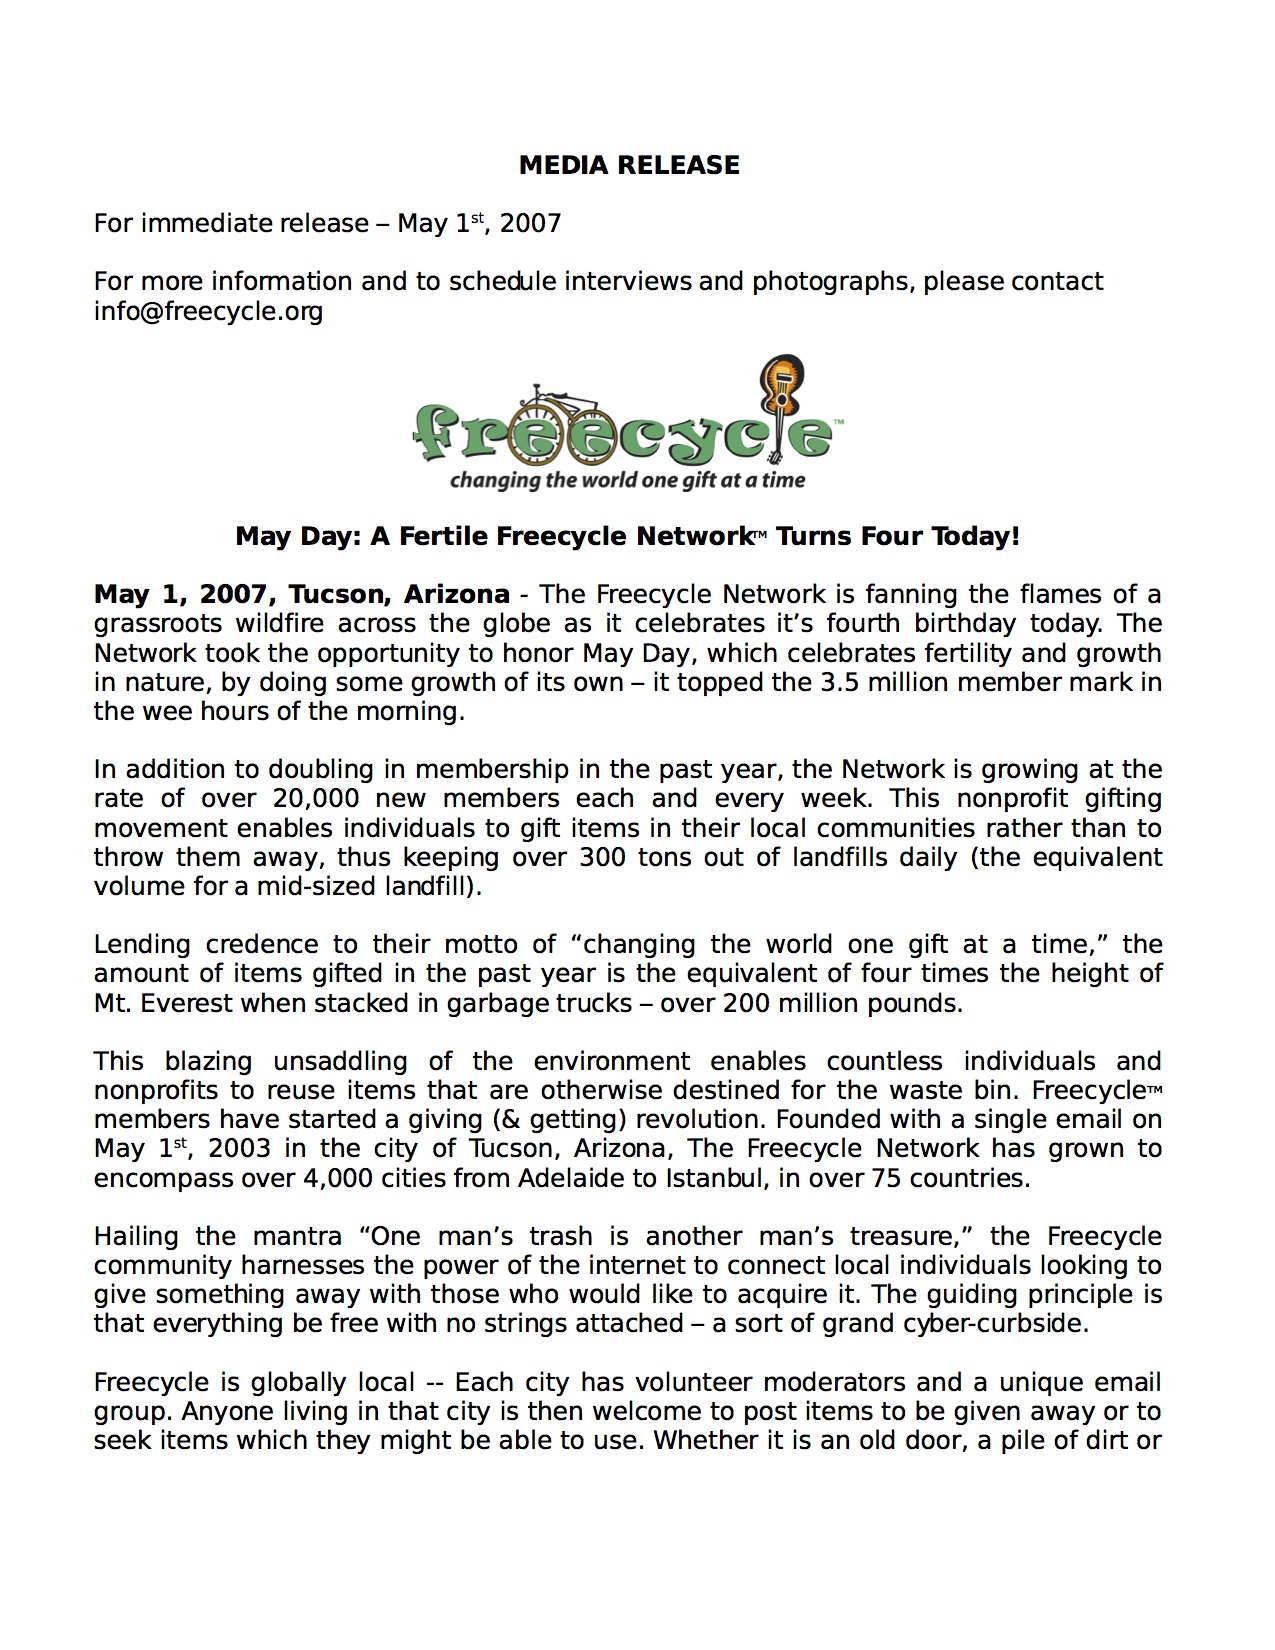 07-05-01 The Freecyle Network media release.jpg